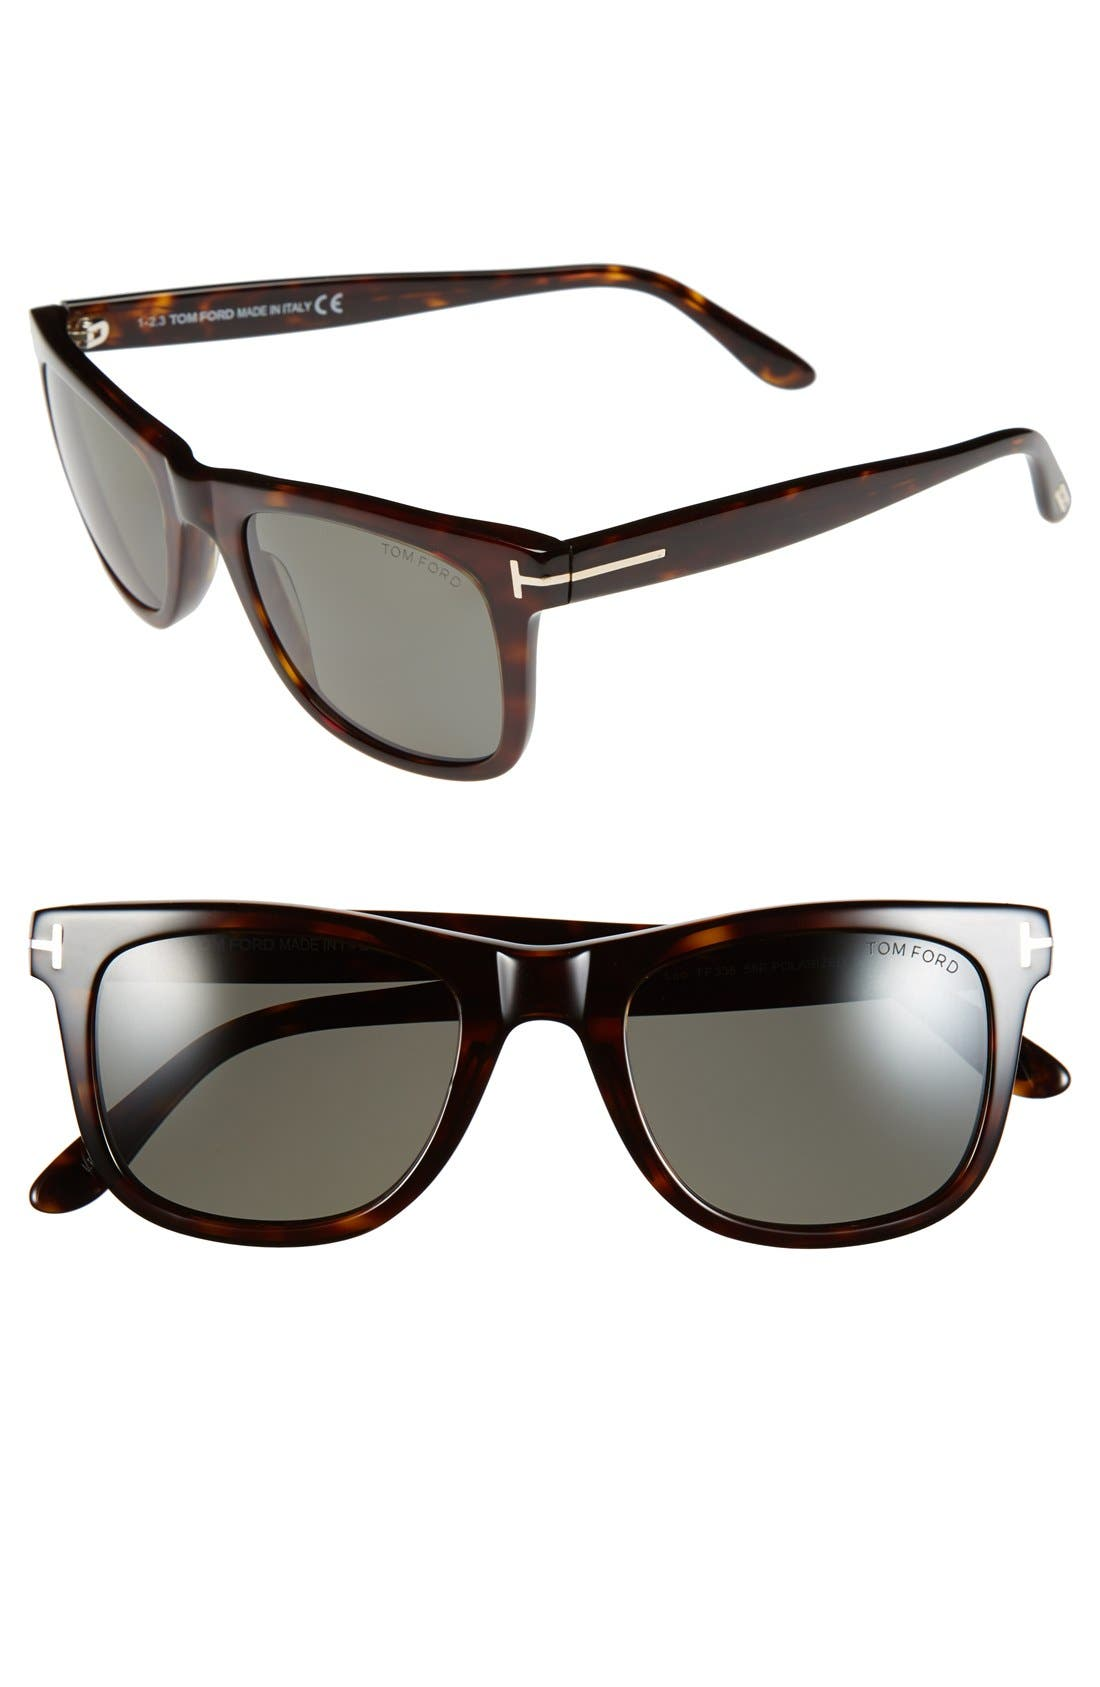 Alternate Image 1 Selected - Tom Ford 'Leo' 52mm Polarized Sunglasses